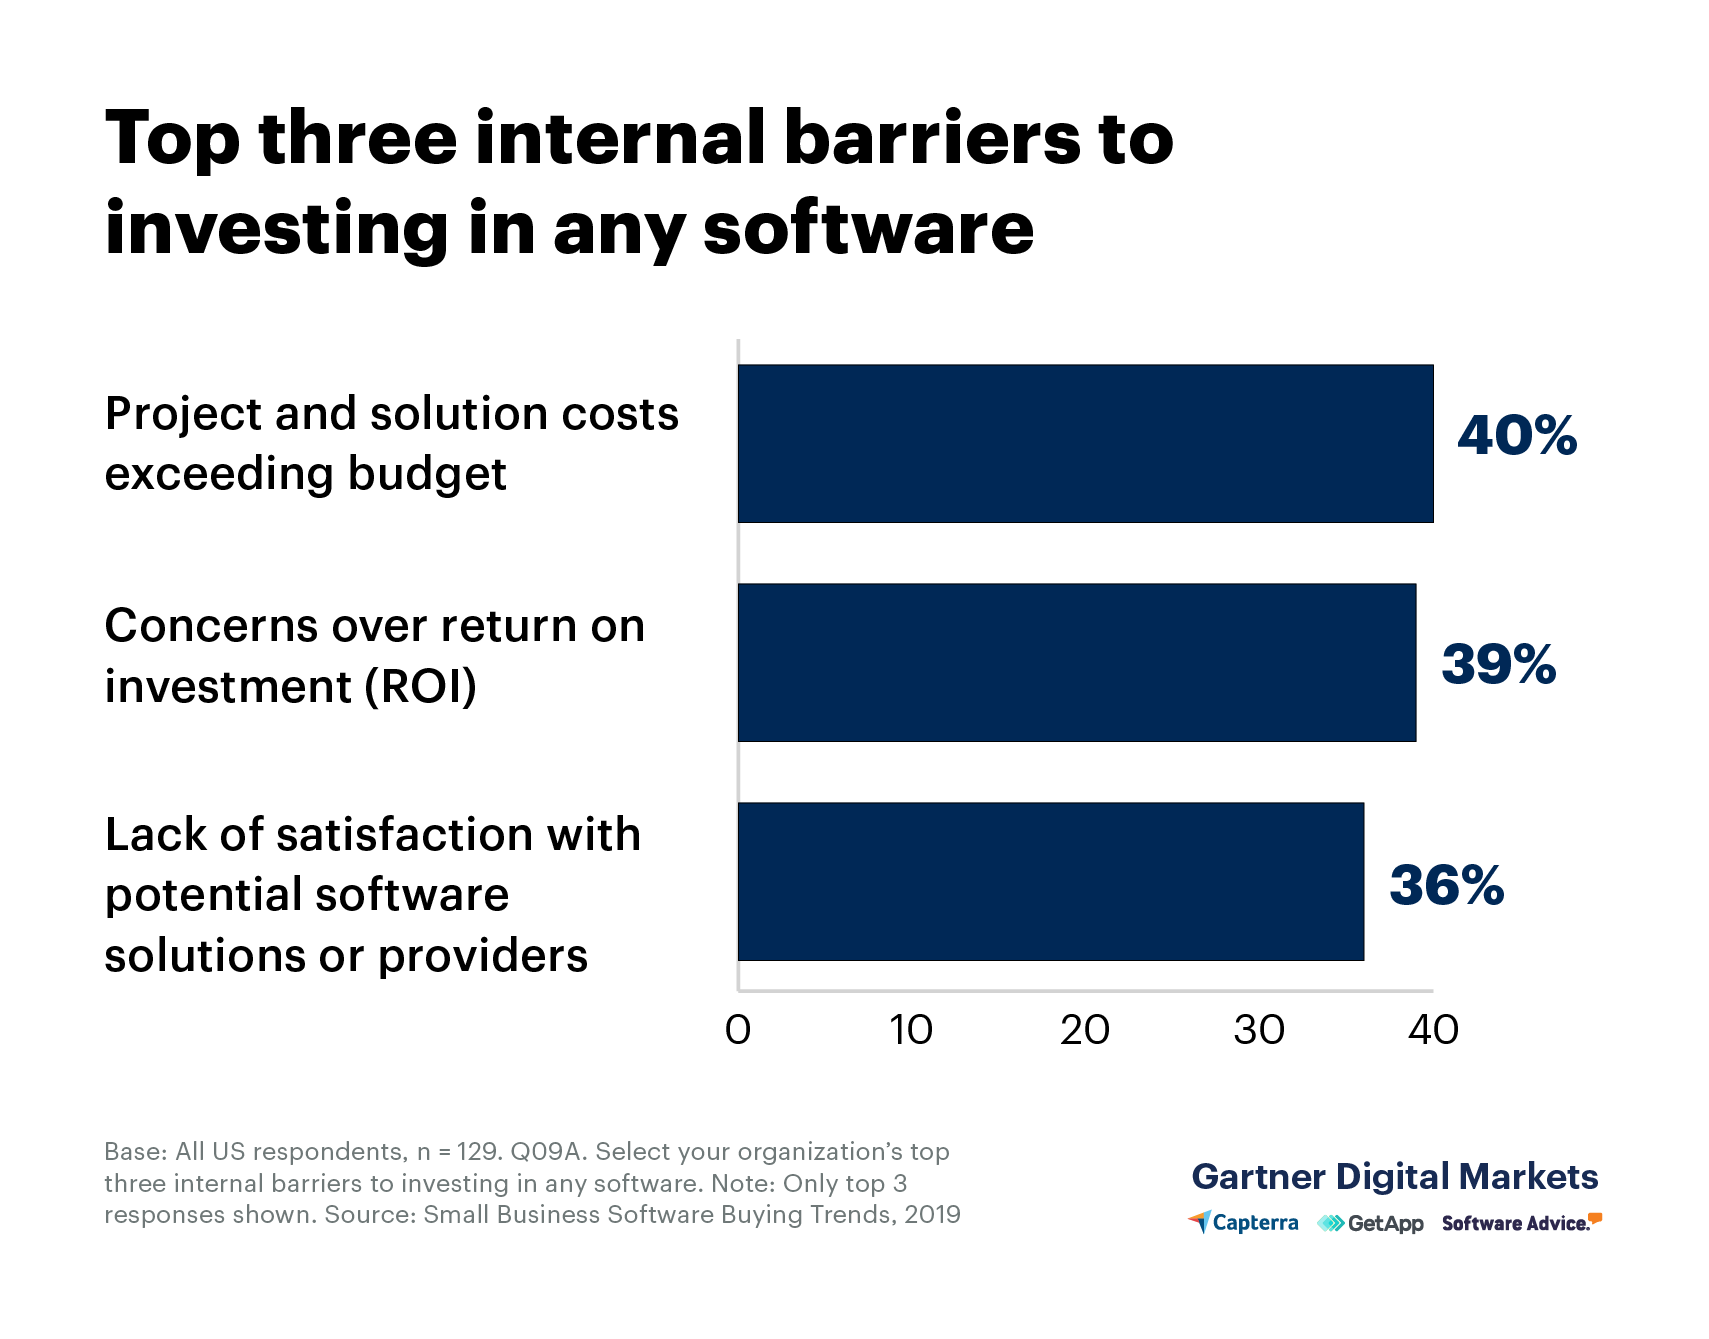 A bar graph displaying the top three internal barriers to investing any softwarae: Project solution costs exceeding budget, concerns over return on investment (ROI), and lack of satisfaction with potential software solutions or providers.